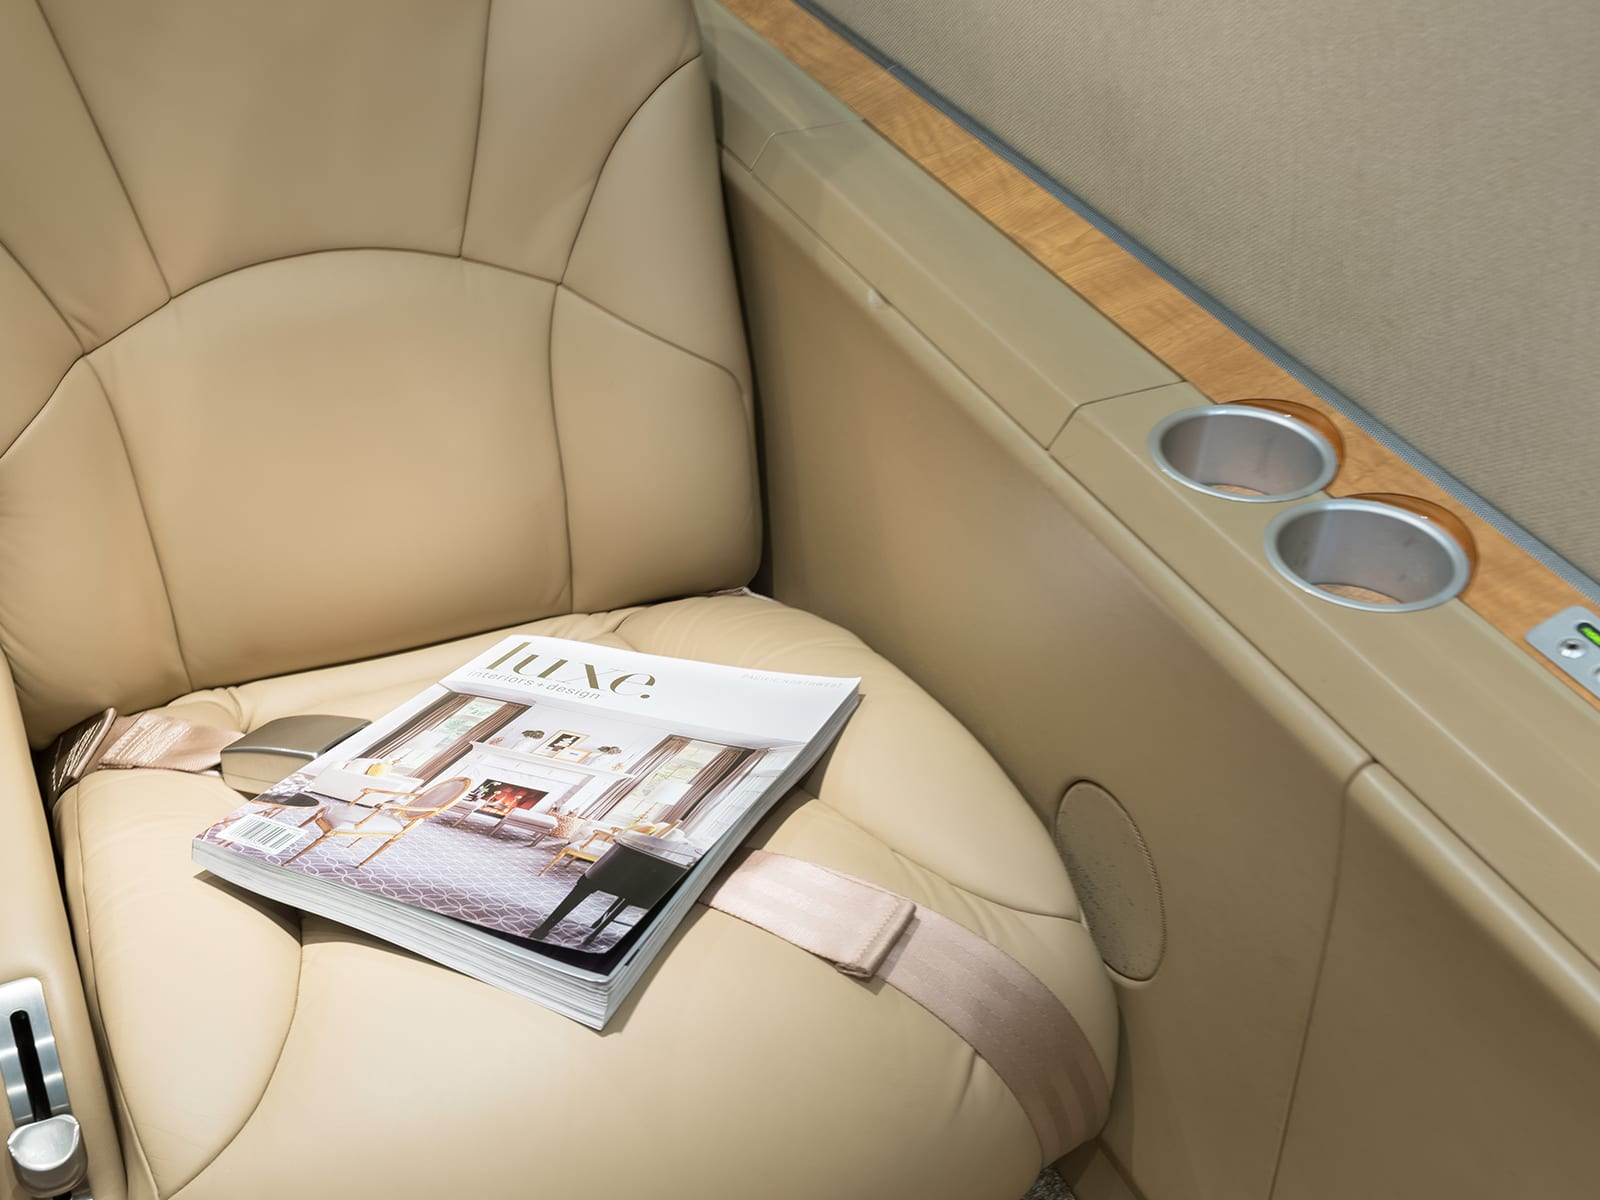 A seat in a Priority Jet airplane